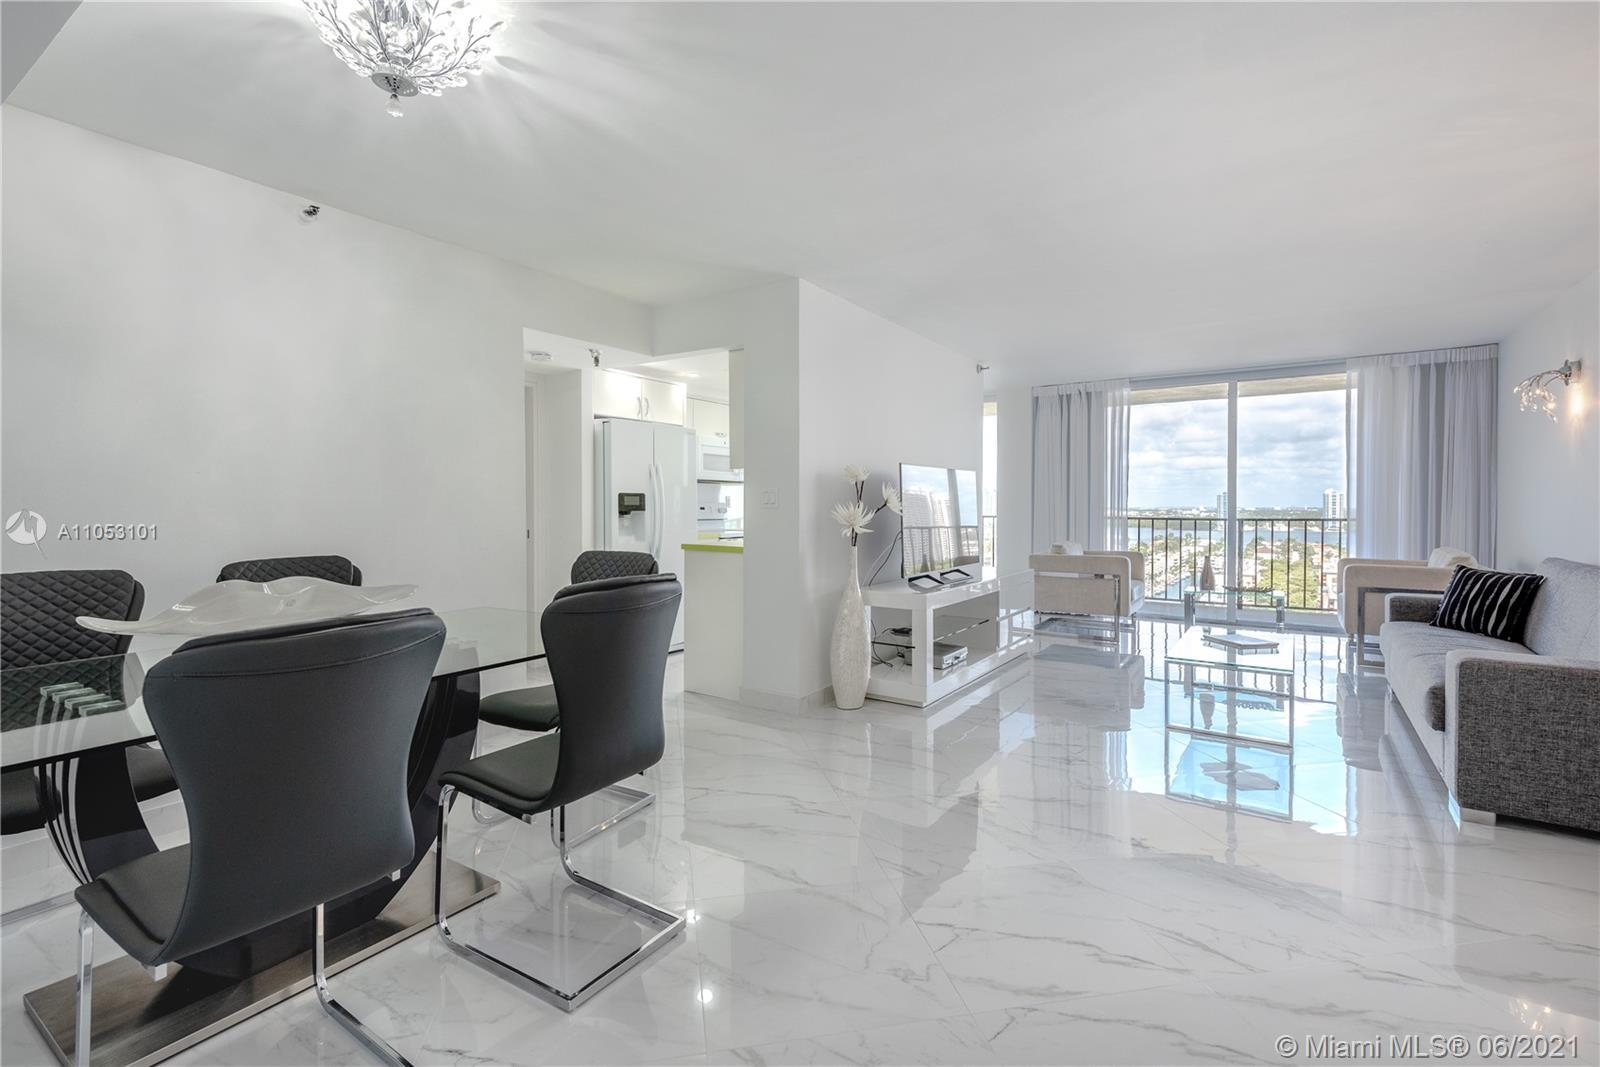 Spacious completely renovated 2Bed/2Bath unit with beautiful Intracoastal waterway views. Enjoy boat